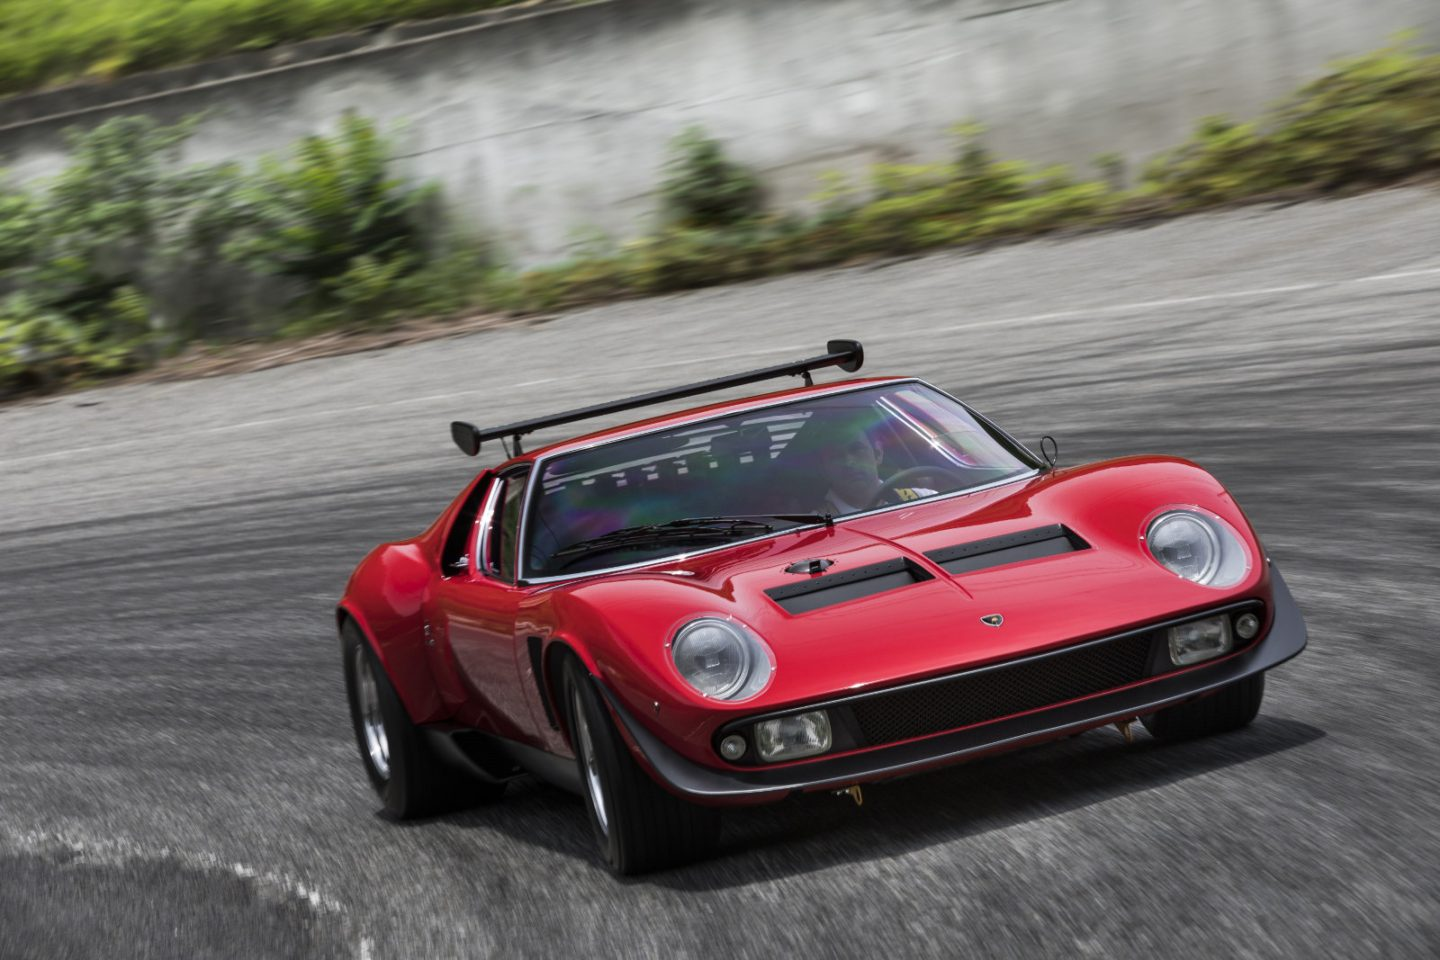 Polo Storico restores one-off Lamborghini Miura SVR